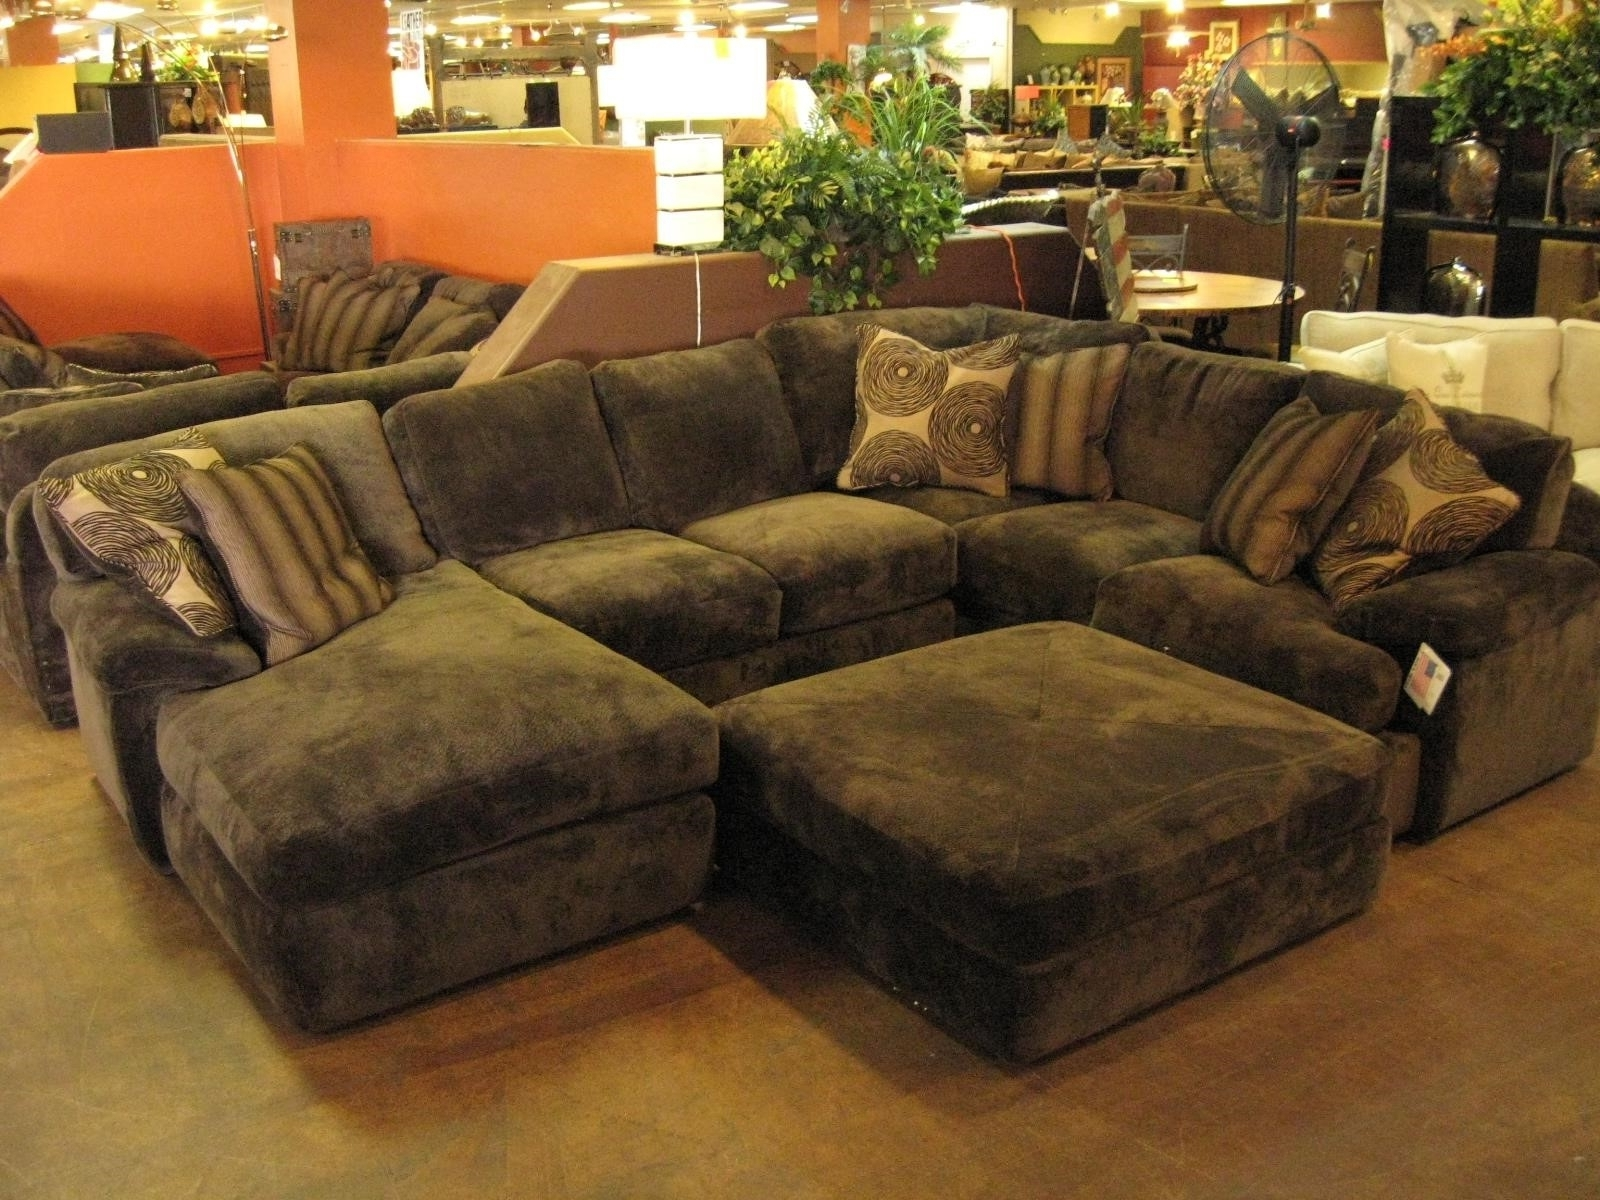 Sofa Extra Large Sectional With Chaise And Ottoman U Shaped With Preferred Sectional Couches With Large Ottoman (View 13 of 15)